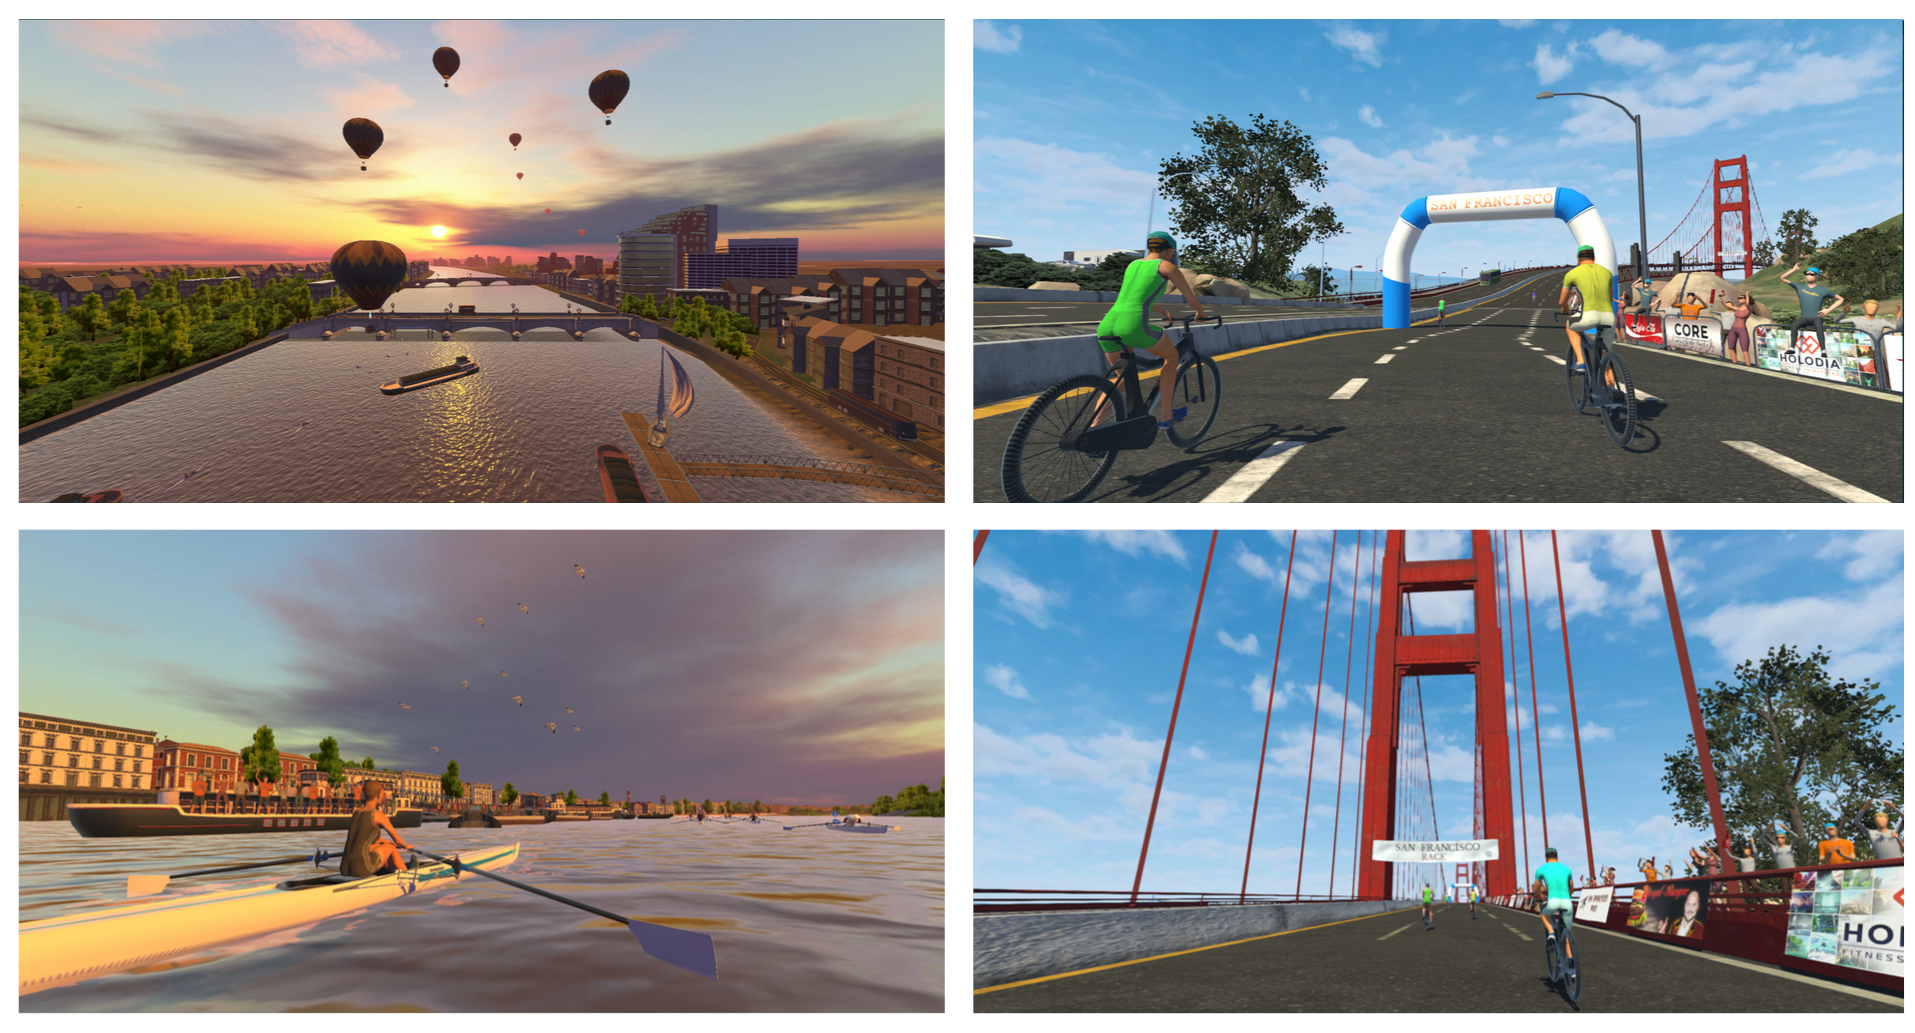 Realistic-VR-sports-environments